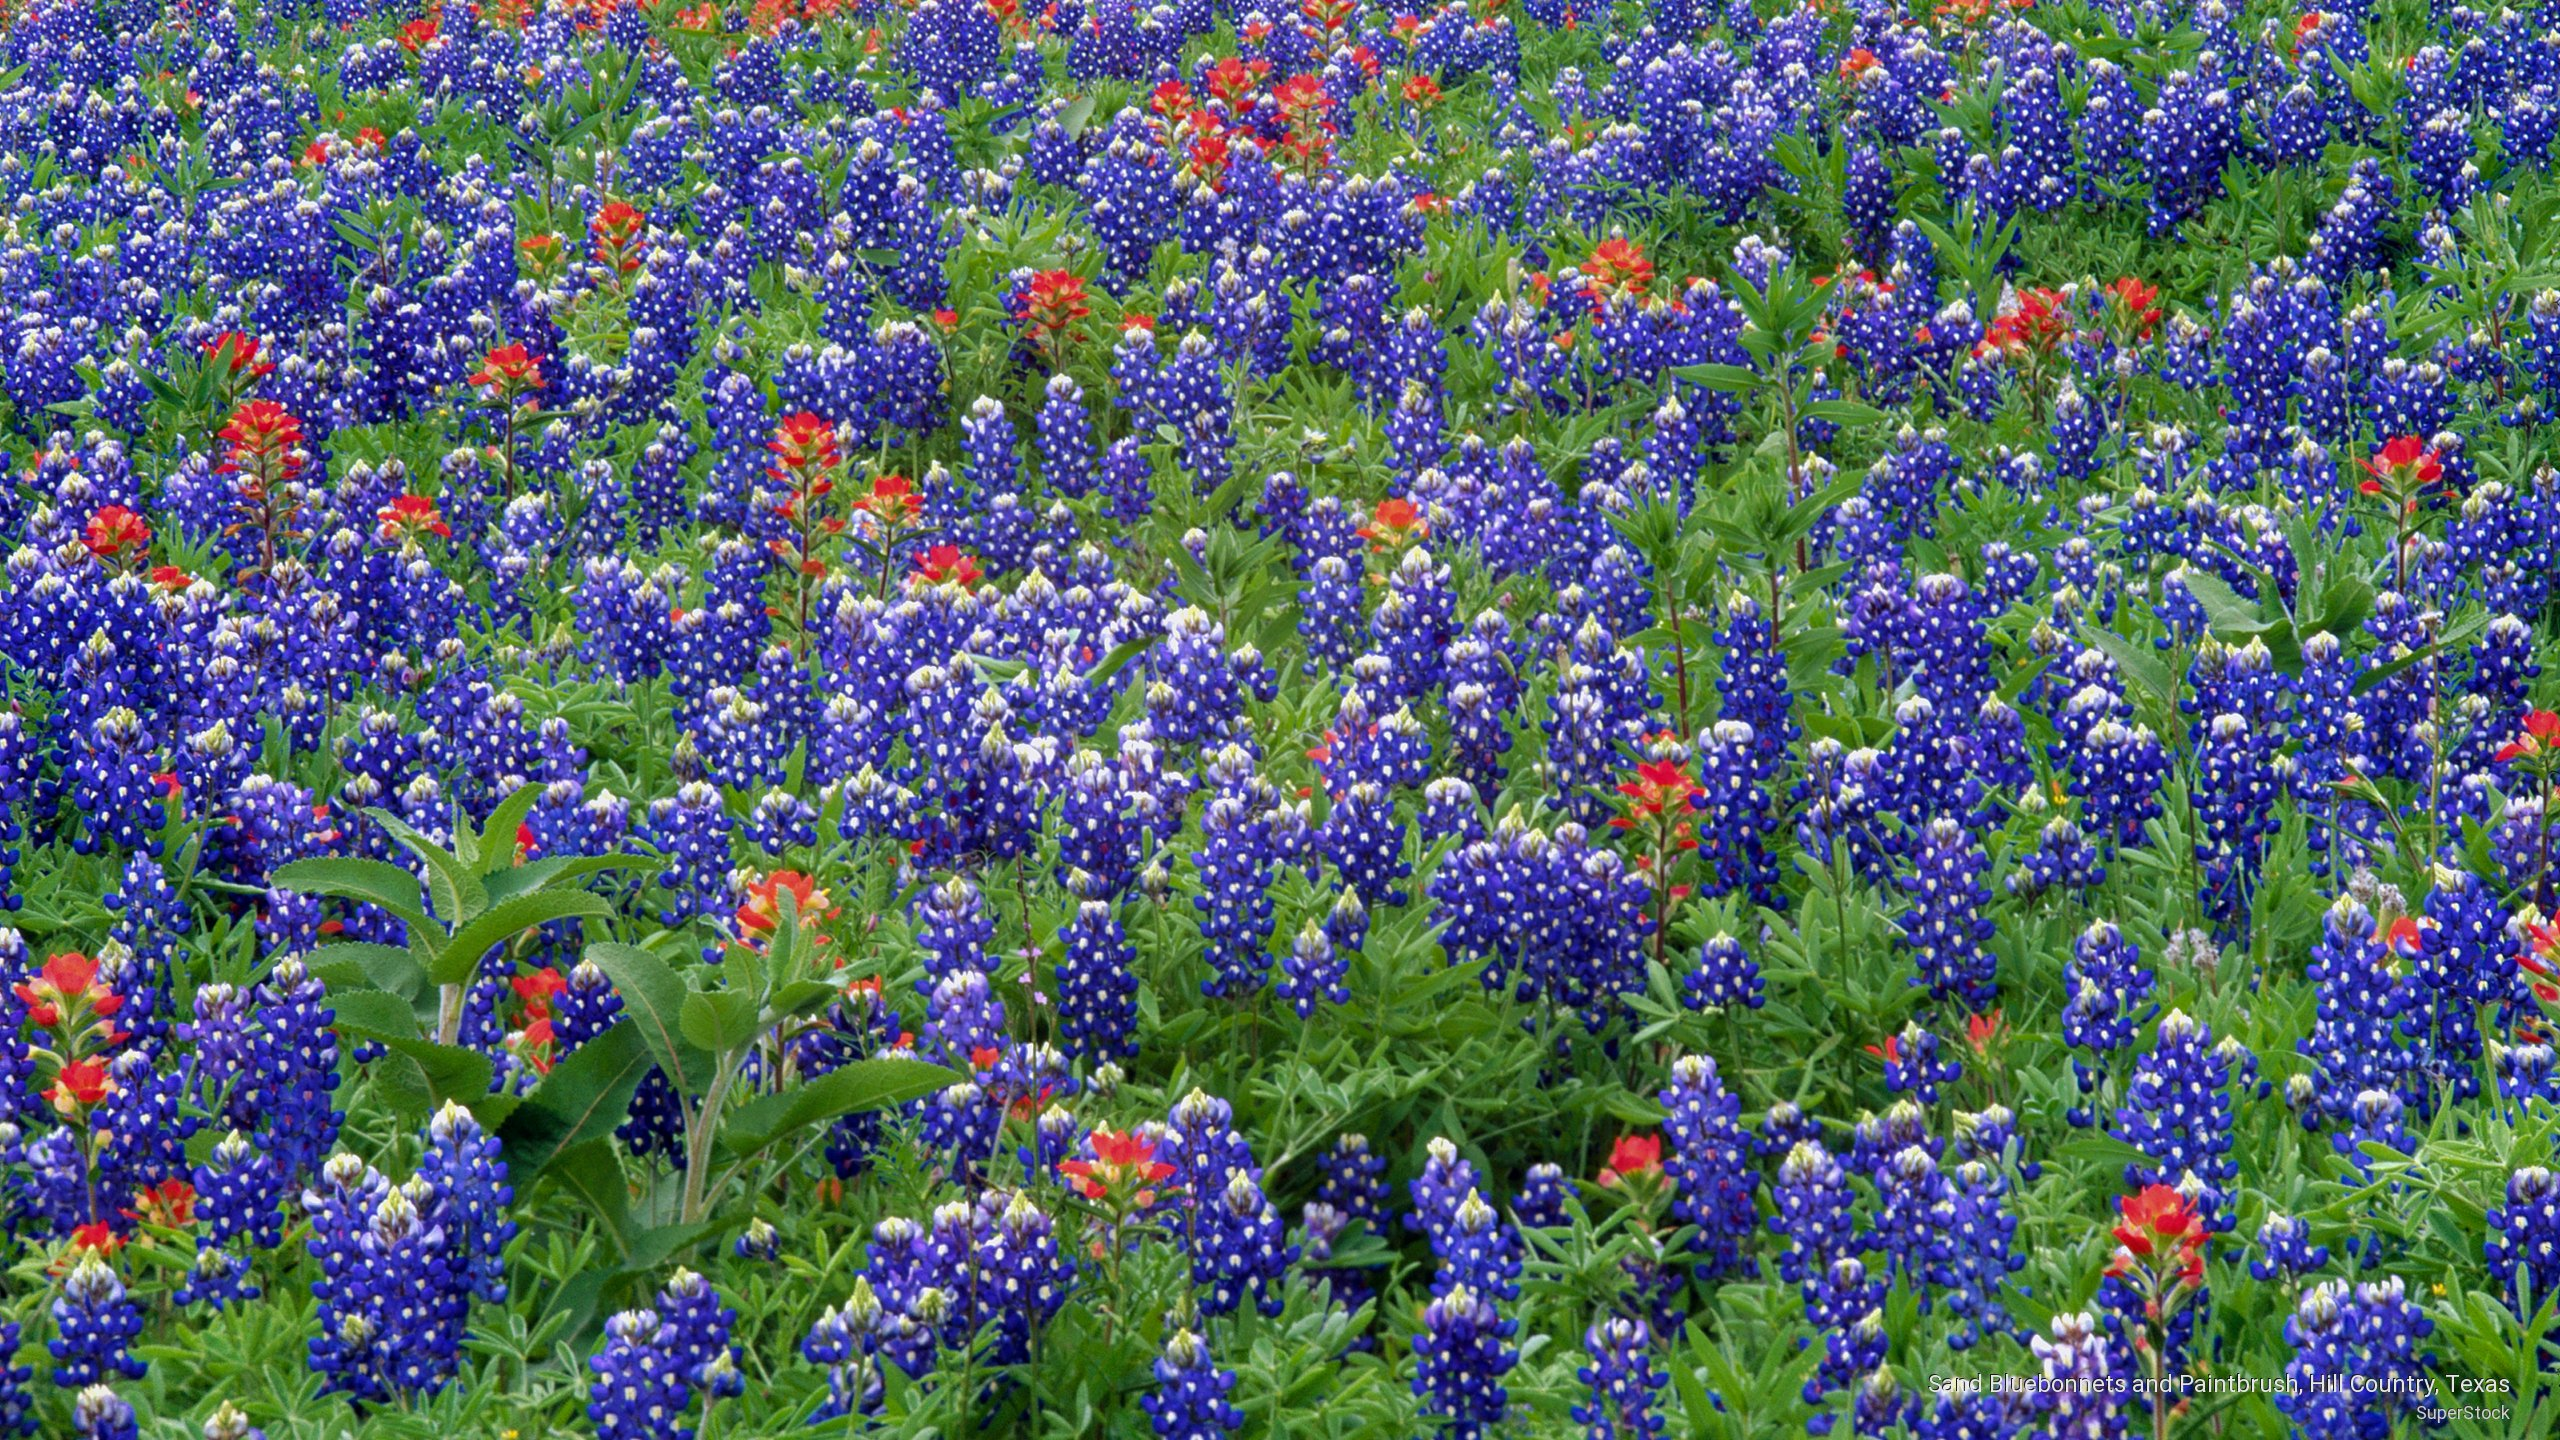 Wallpaper   Sand Bluebonnets and Paintbrush Hill Country Texas 2560x1440